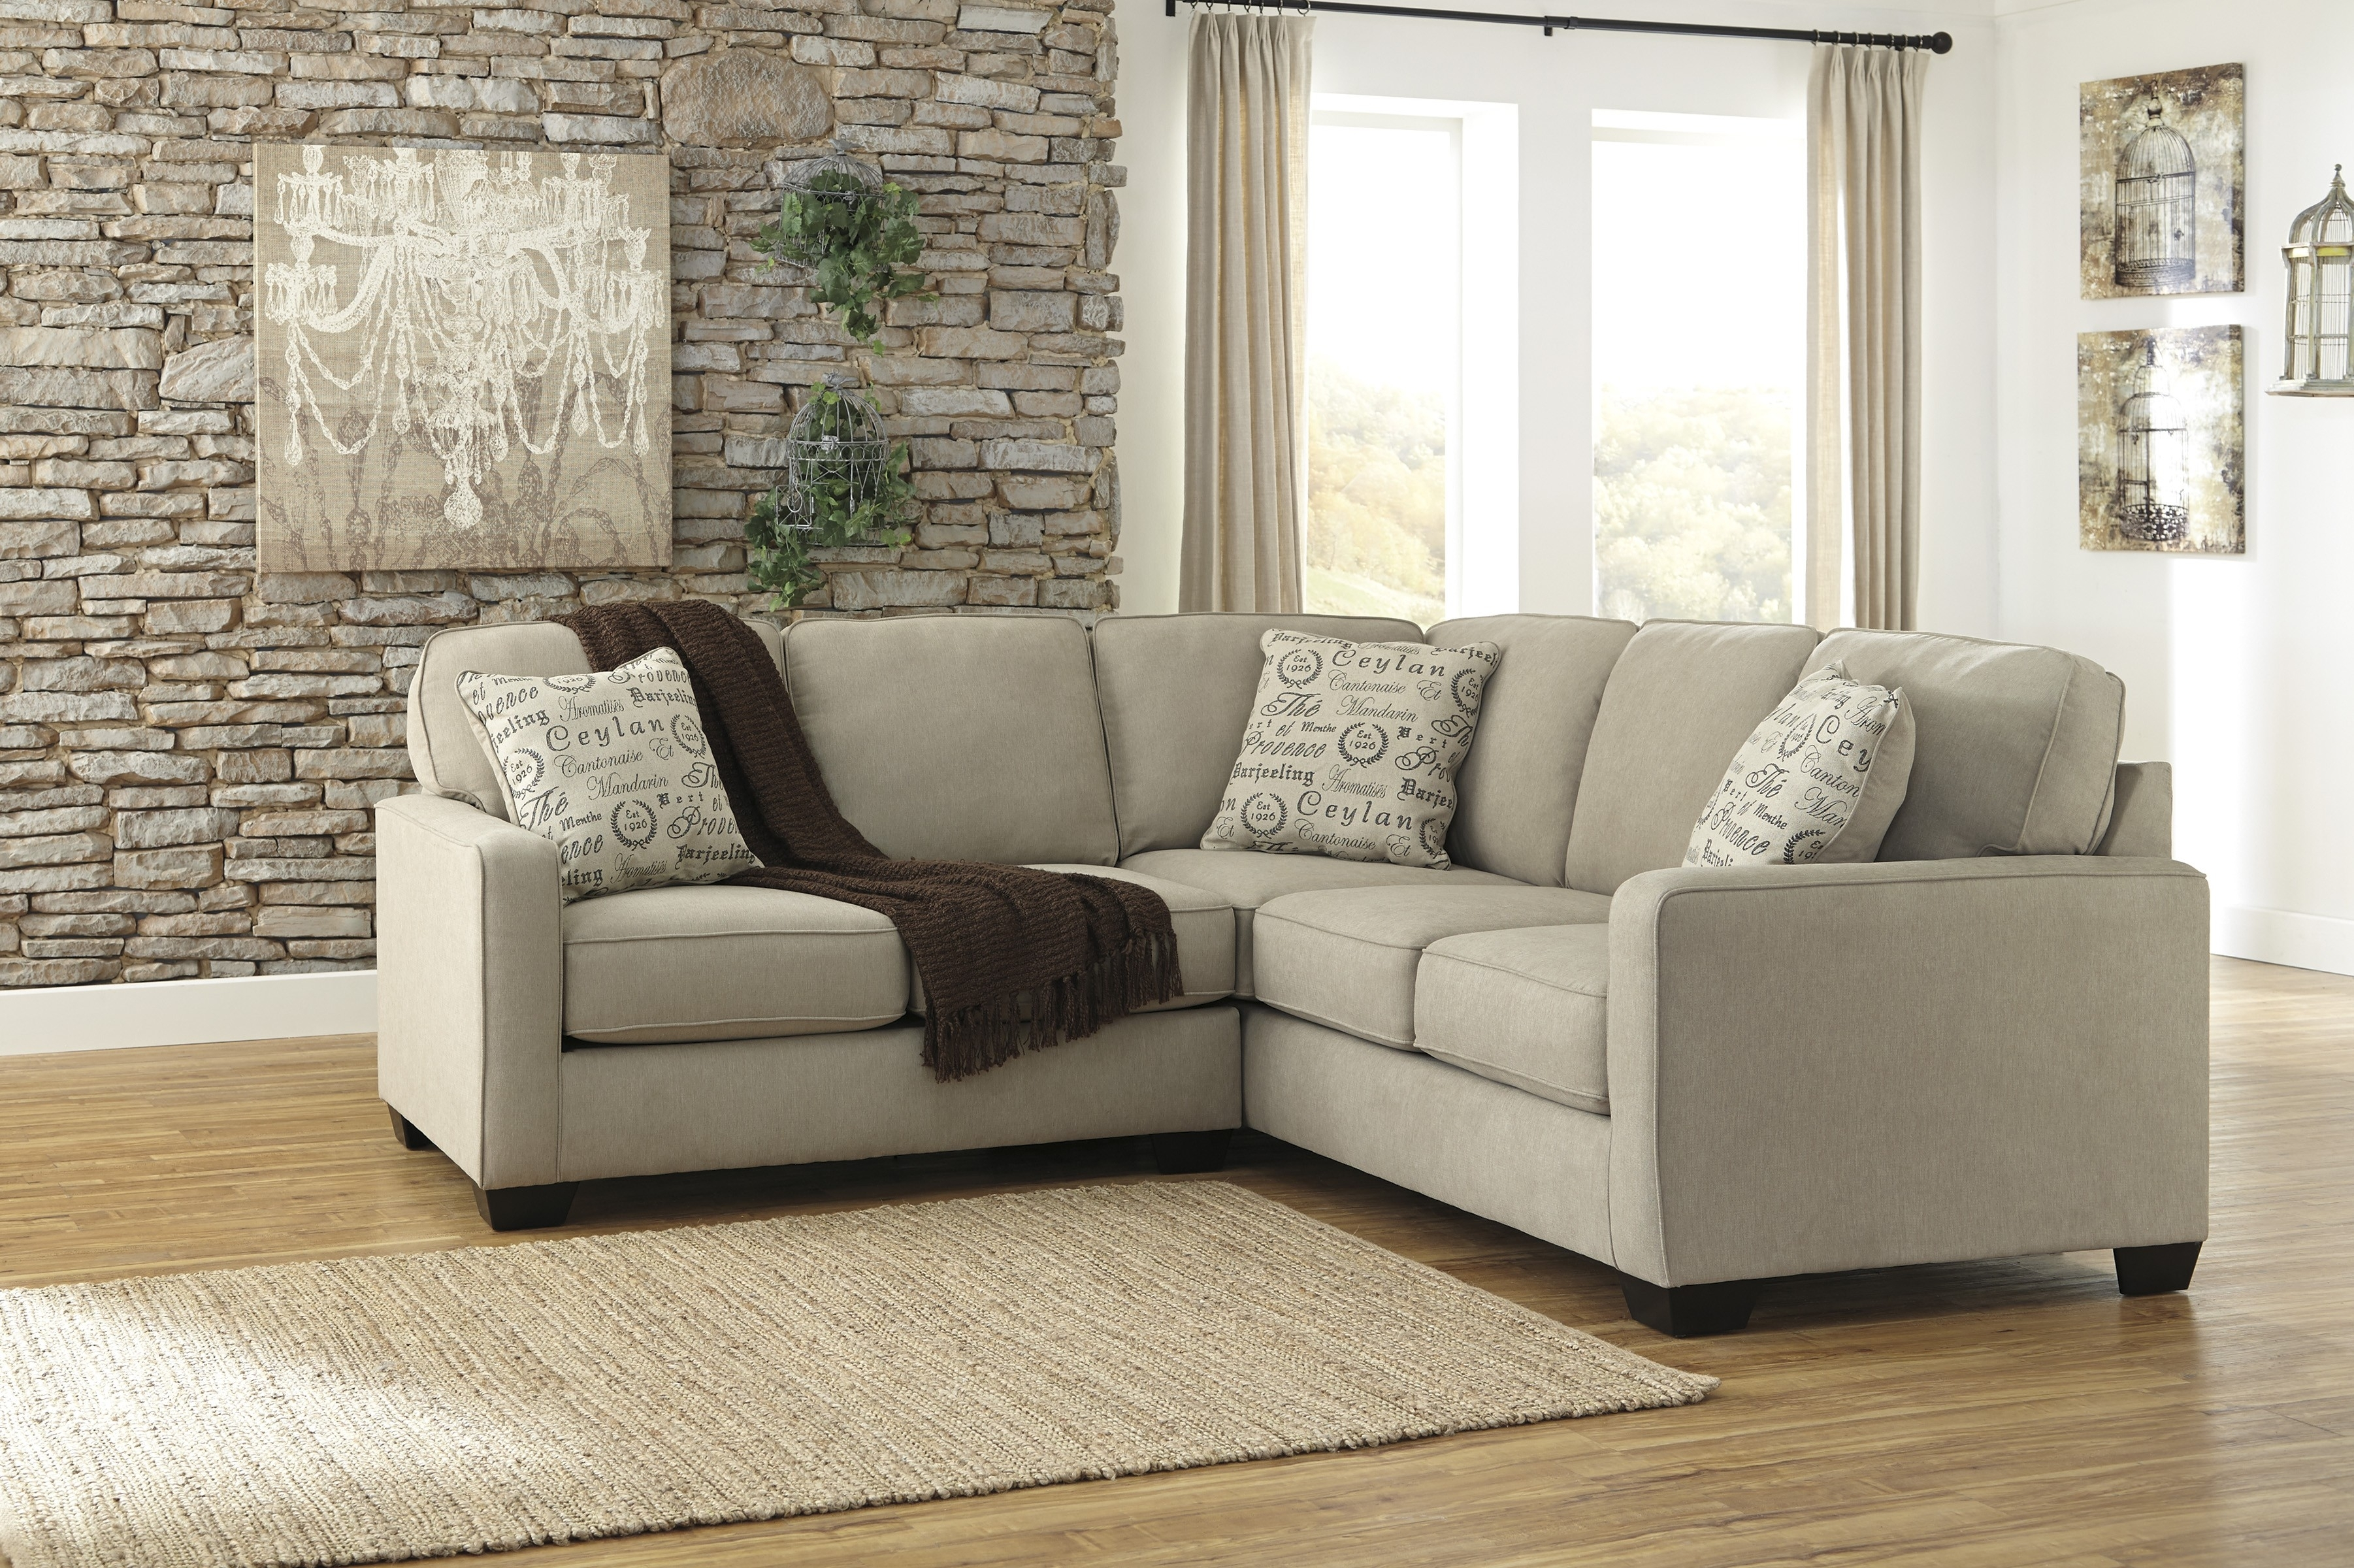 Alenya Quartz 2 Piece Sectional Sofa For $ (Image 4 of 10)